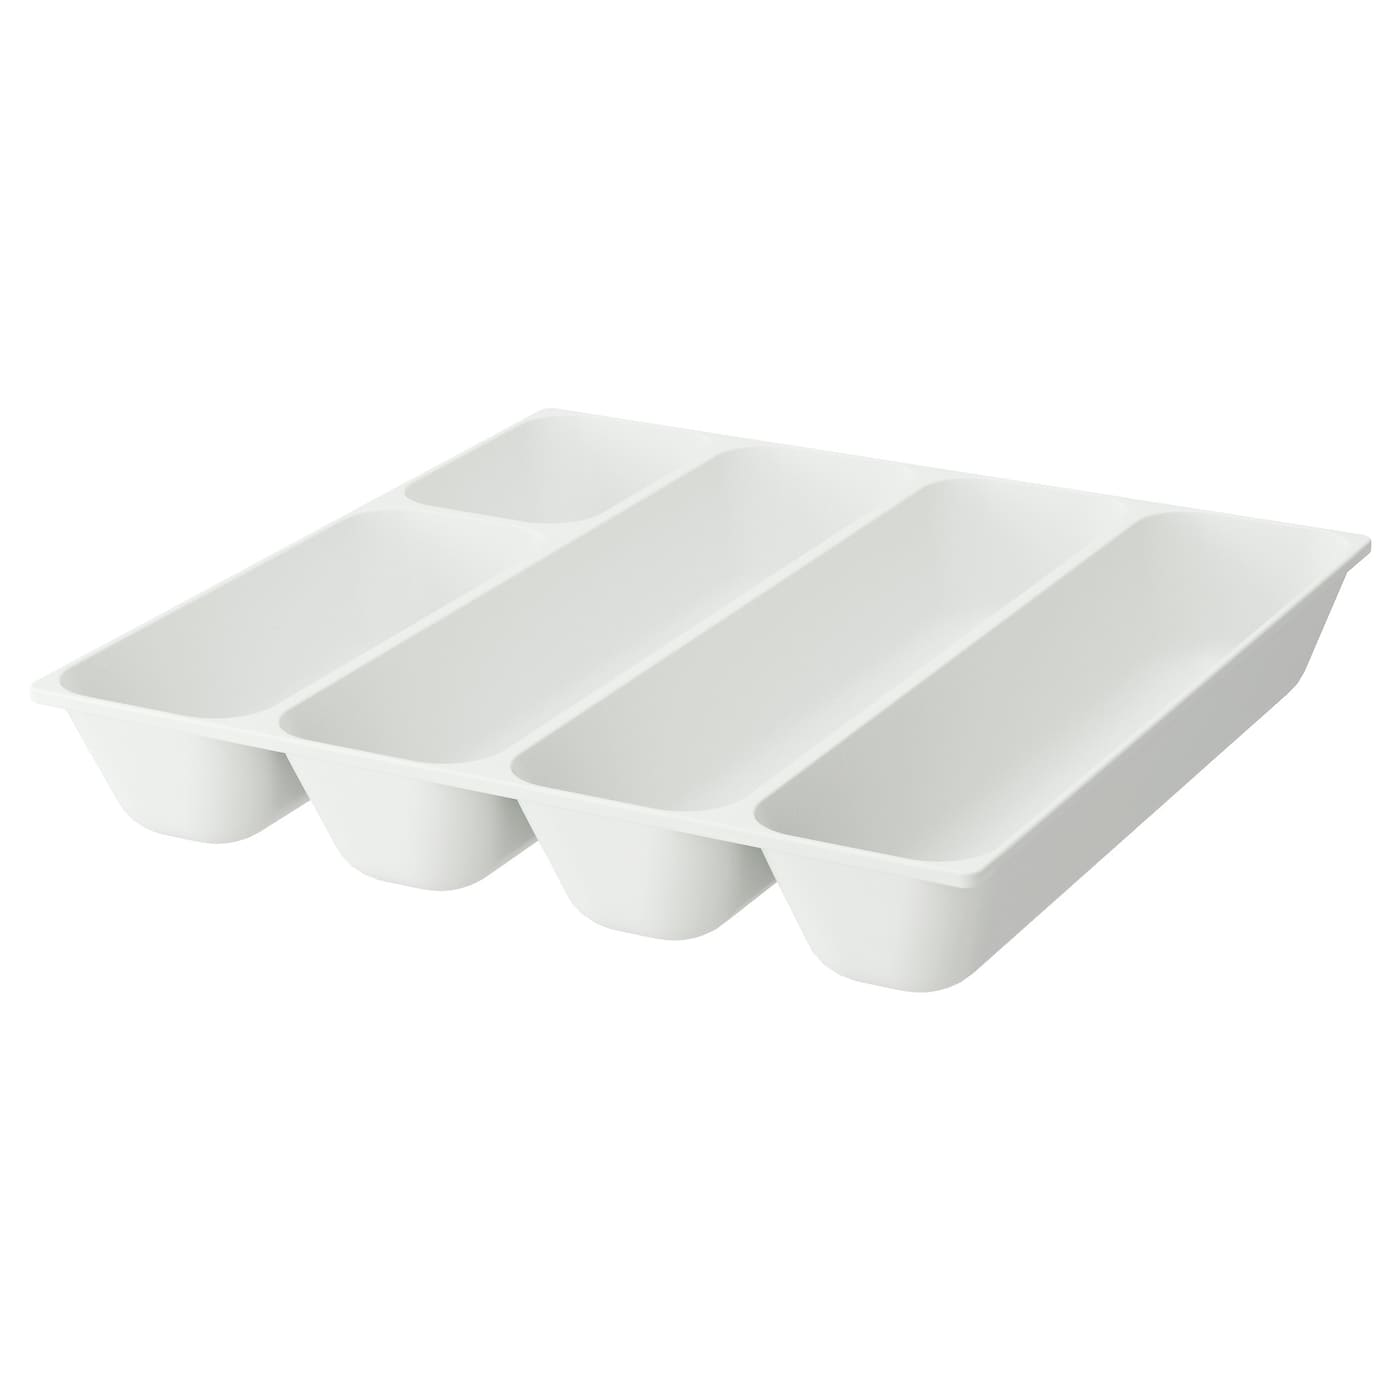 IKEA VARIERA cutlery tray Makes it easier to organise and find what you need in the drawer.